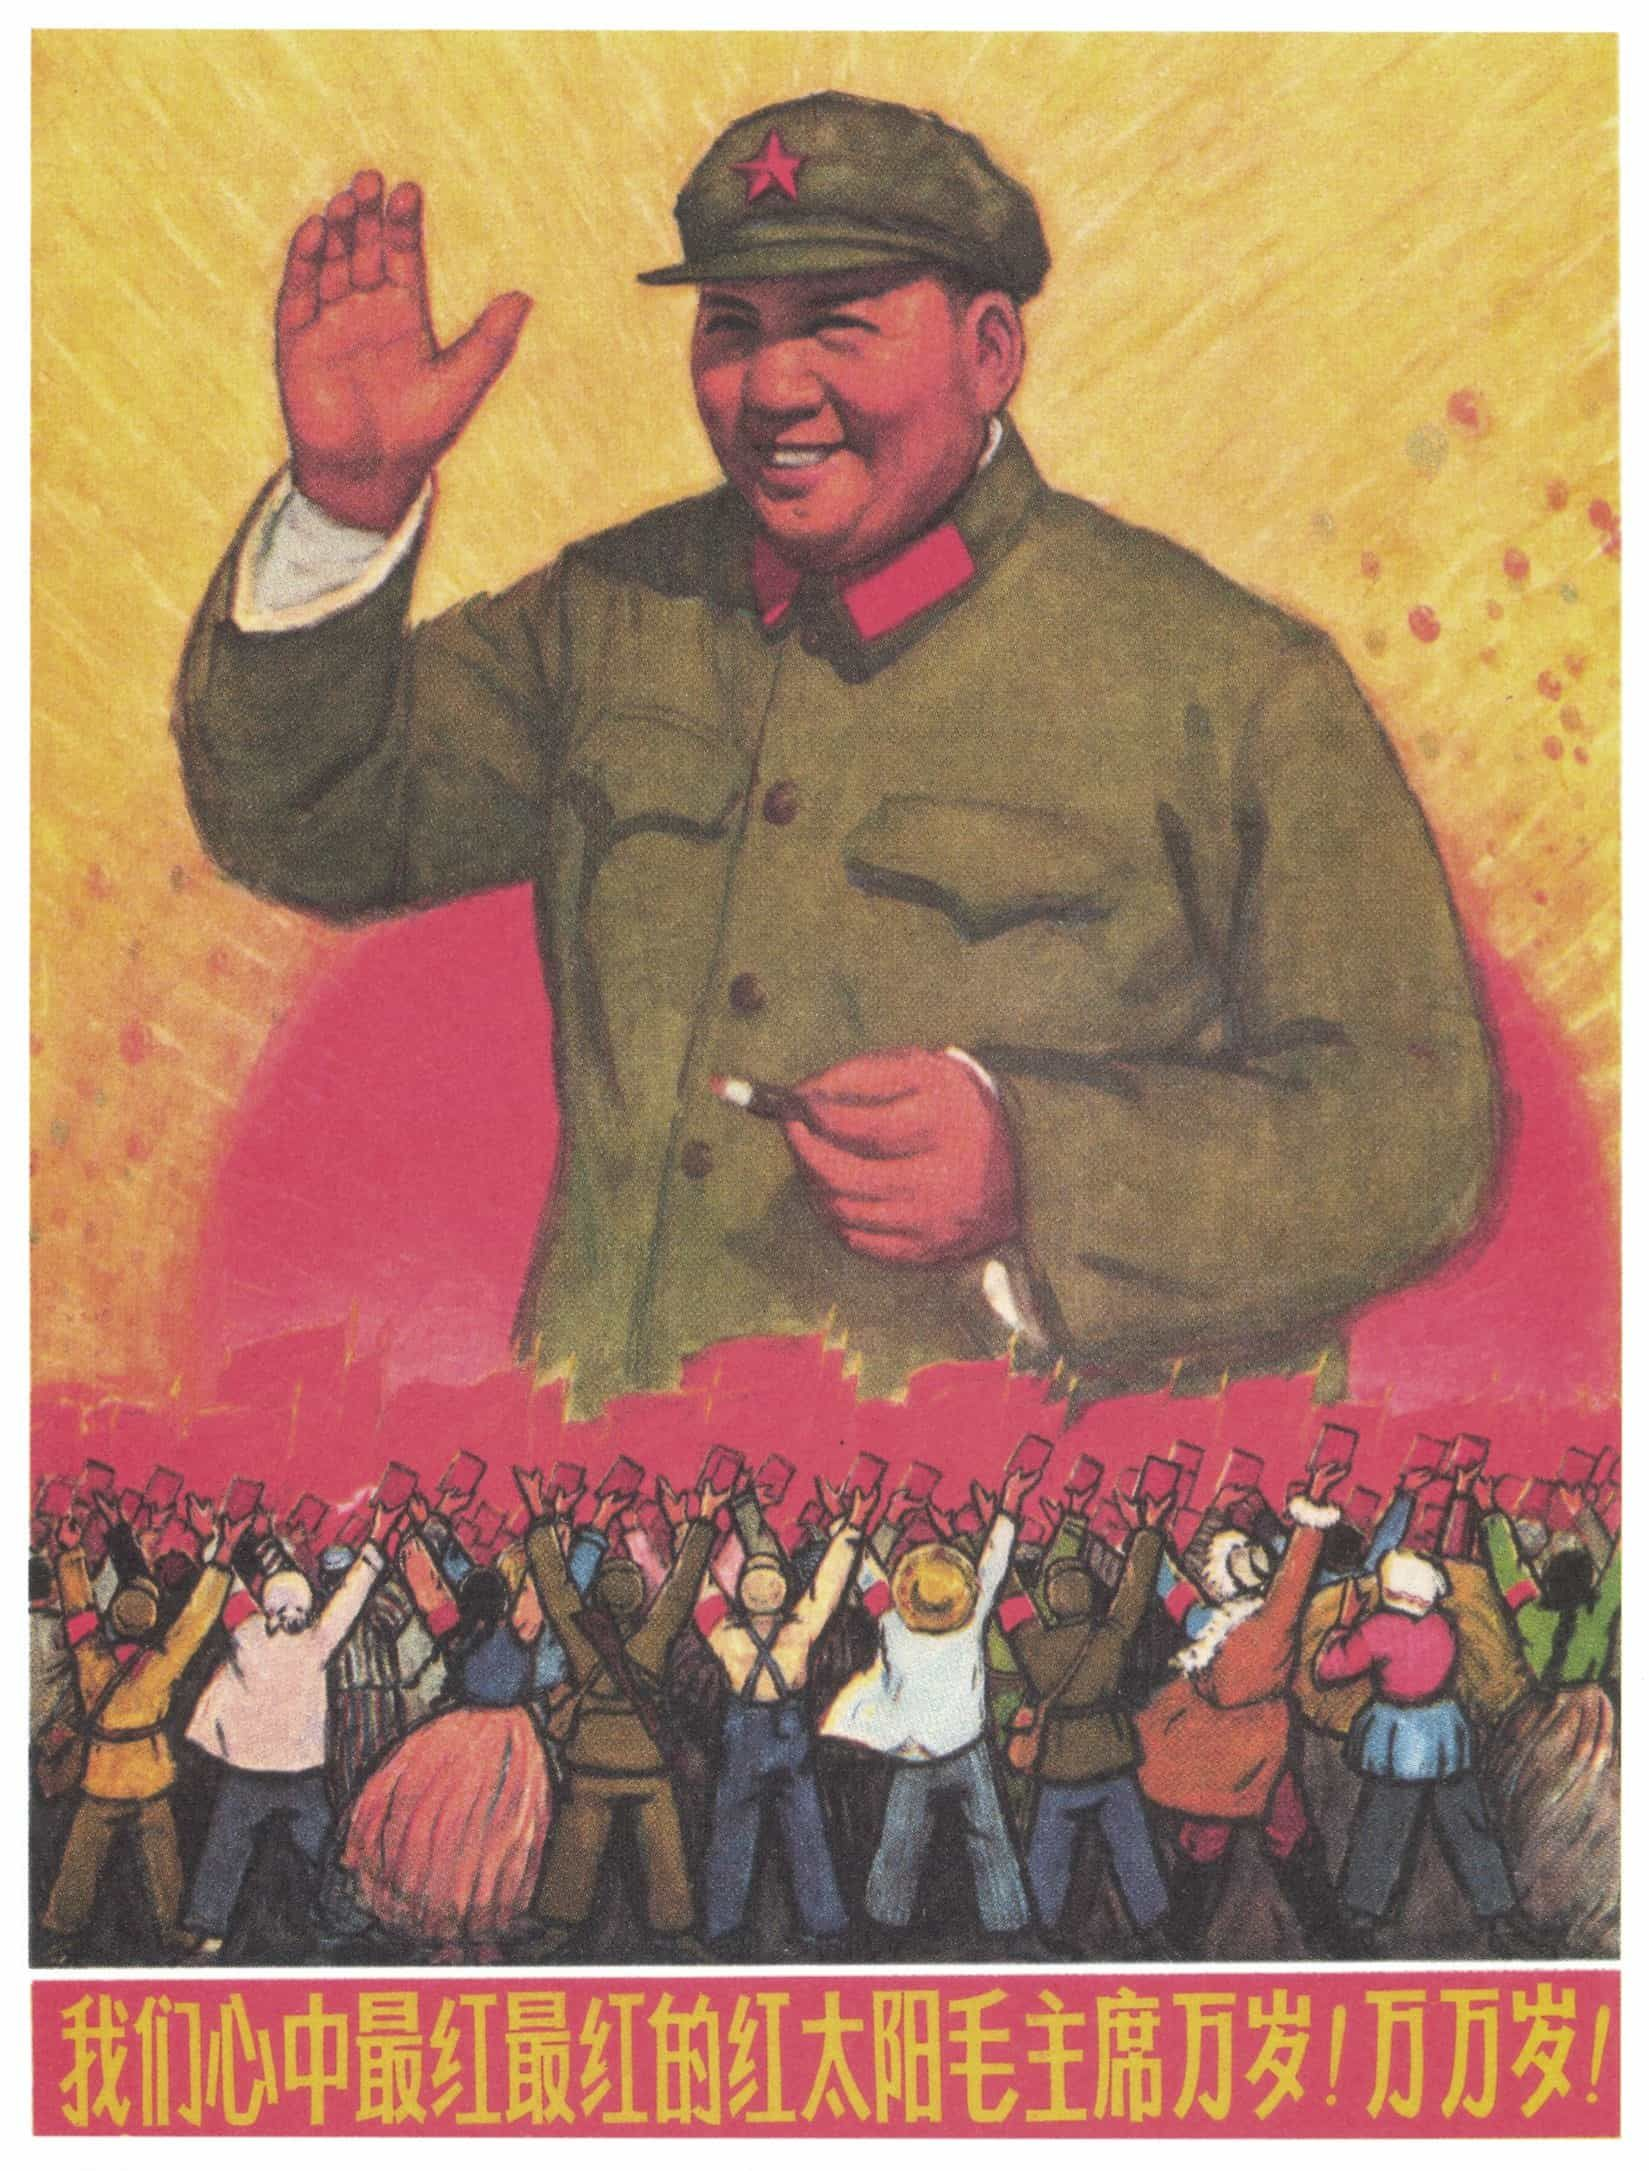 Old Chinese Poster Long Live Long Long Live Chairman Mao Chinese Propaganda Posters Chinese Posters Chinese Propaganda